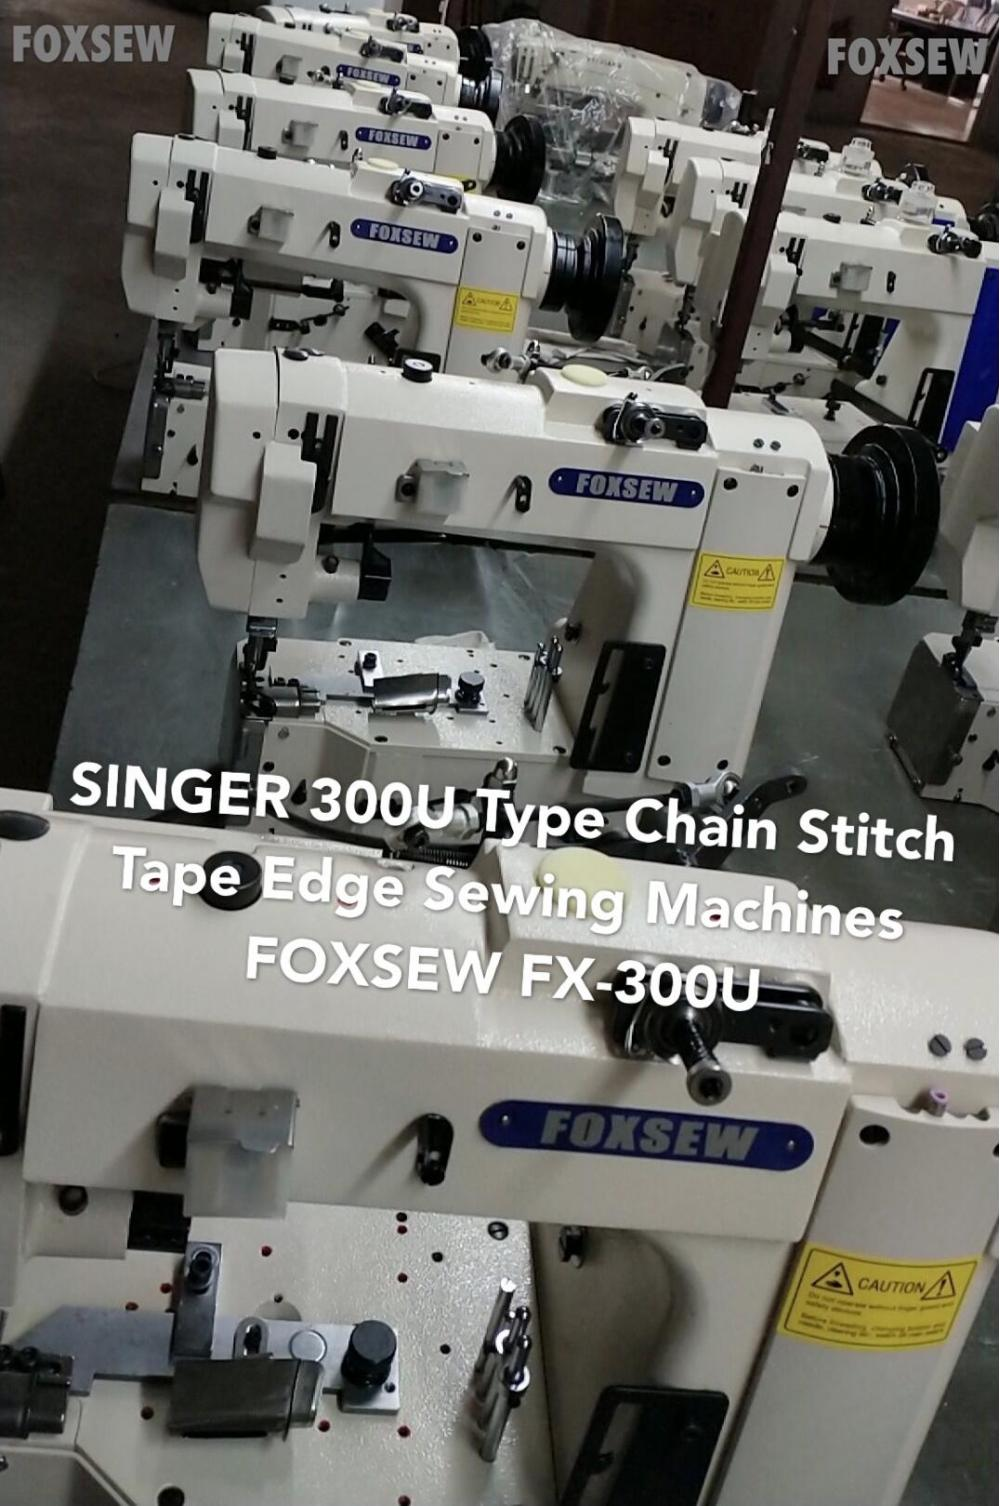 300u Tape Edge Sewing Machine